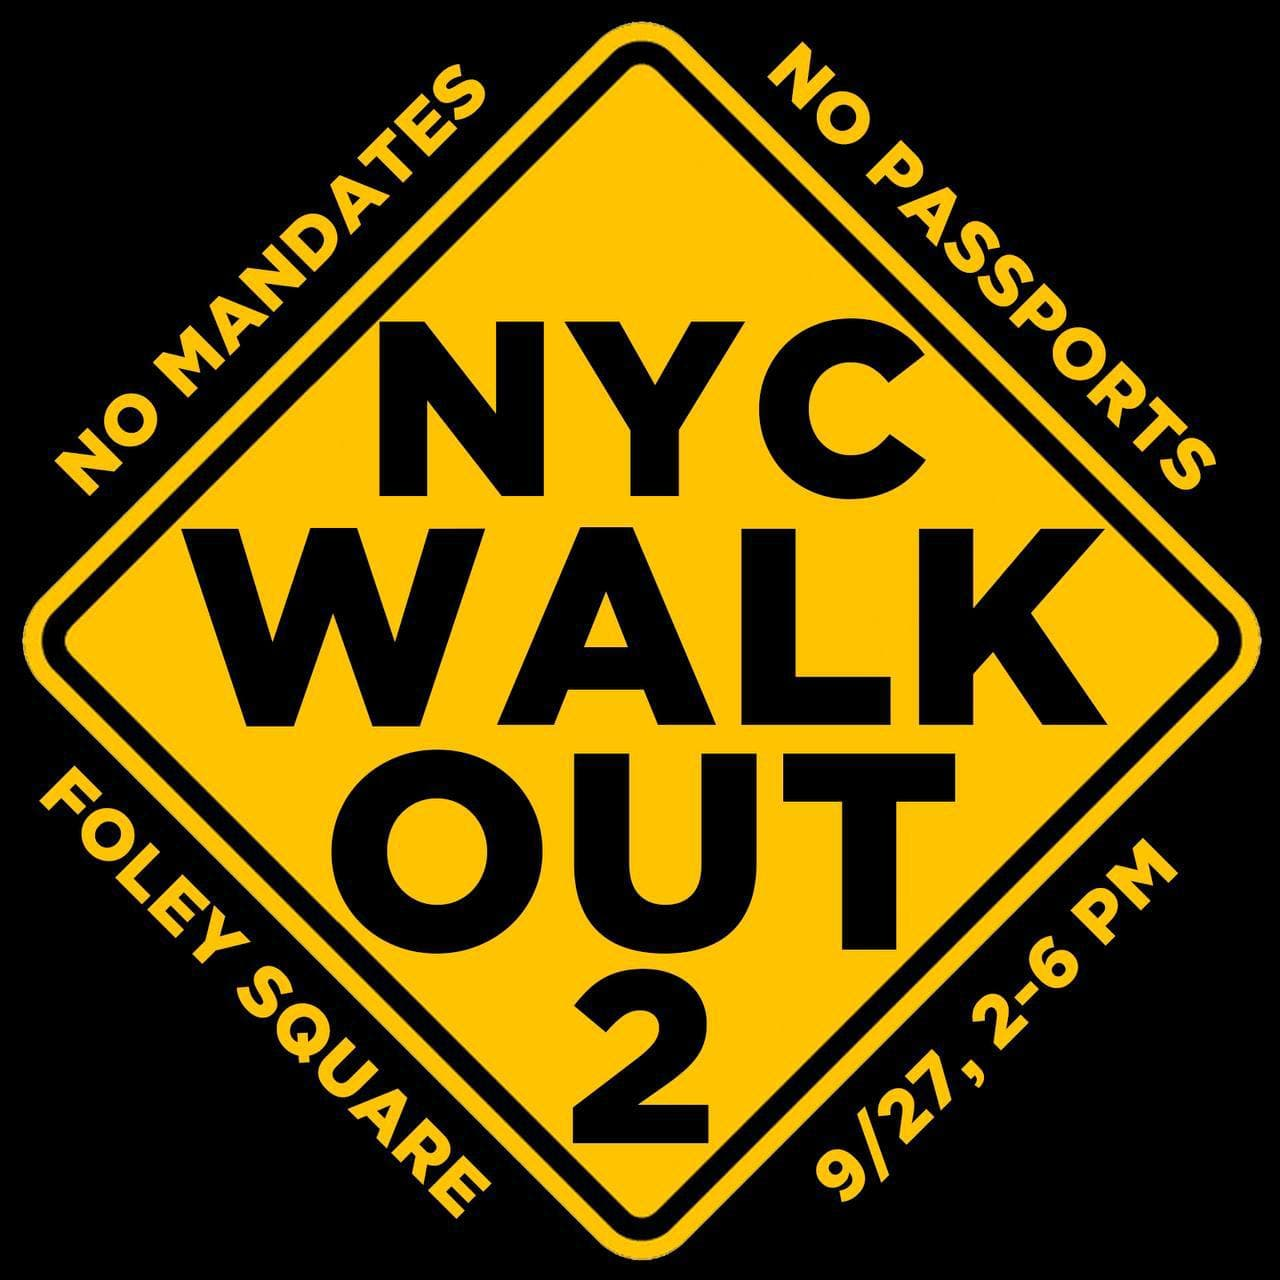 New Yorkers Rising Up as Mandatory COVID Shot Deadline Looms – Citywide Walk Out Planned Same Day NYC-Walk-Out